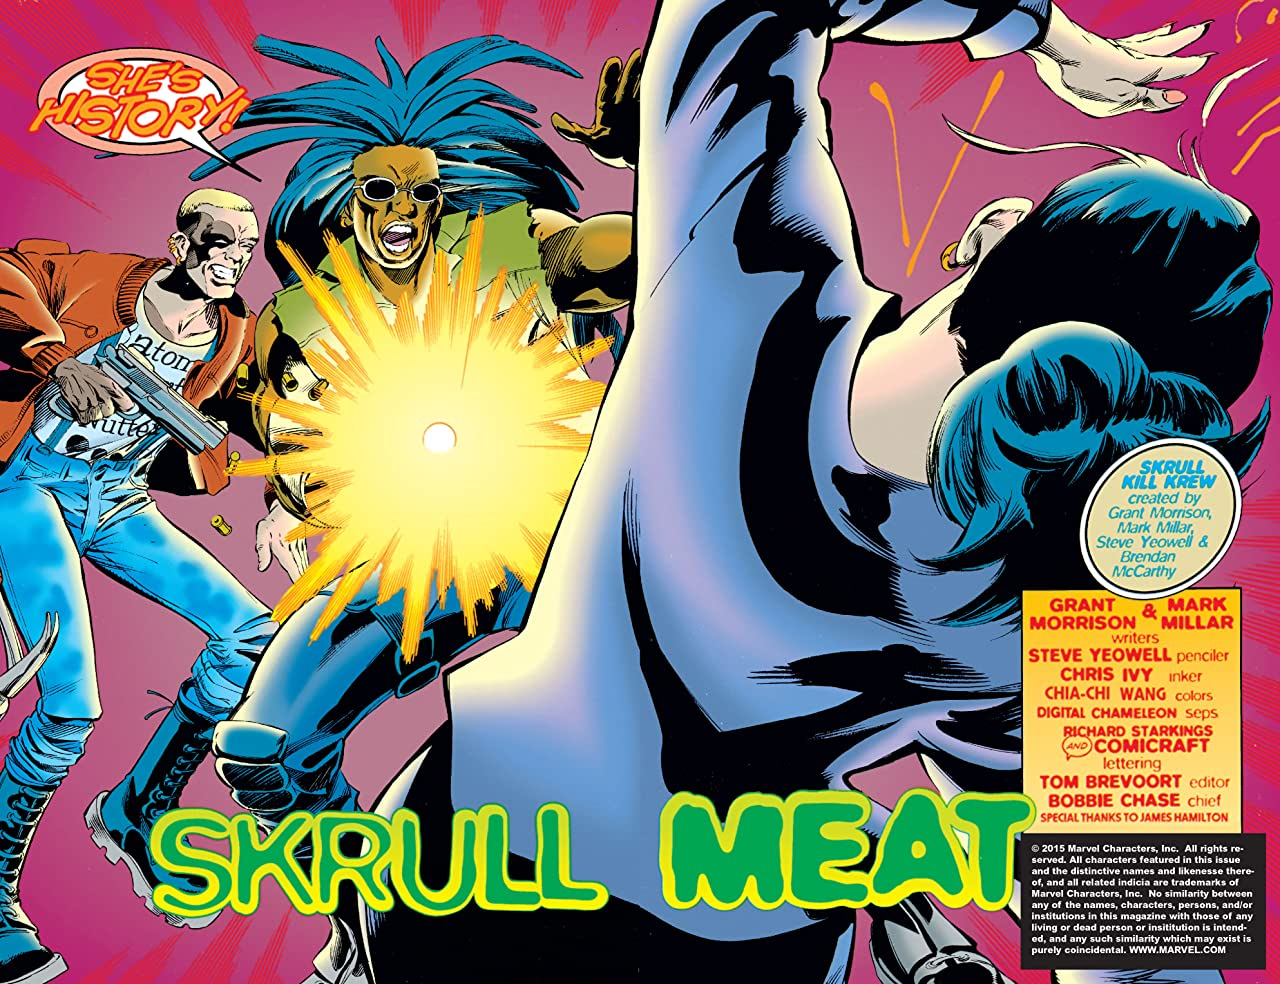 Skrulls Must Die! - The Complete Skrull Kill Krew